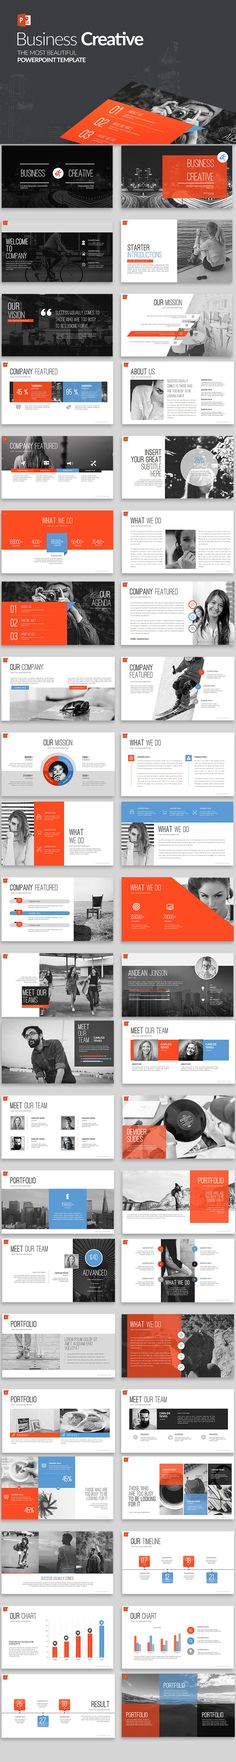 121 best business powerpoint templates images on pinterest in 2018 business creative powerpoint template accmission Choice Image